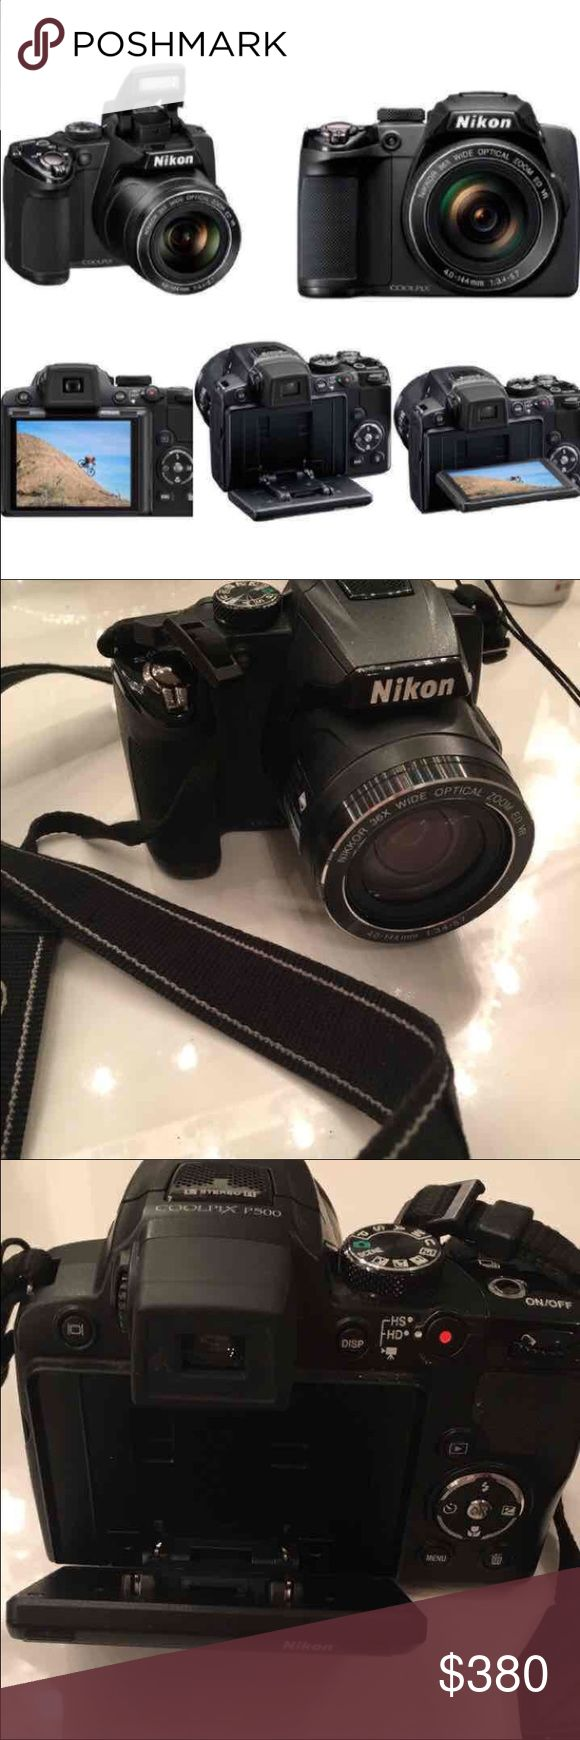 Nikon camera Nikon COOLPIX P500 12.1 CMOS Digital Camera with 36x NIKKOR Wide-Angle Optical Zoom Lens and Full HD 1080p Video (Black) **Preowned-in excellent condition  Features:  •36x Wide-Angle Optical Zoom-NIKKOR ED Glass Lens. •12.1-megapixel CMOS sensor for high-speed operation •Full HD (1080p) Movie with Stereo sound and HDMI Output •5-way VR Image Stabilization System  Technical Details: •Auto Focus Technology	 •Contrast Detect (sensor) •Multi-area •Face Detection •Live View Nikon…